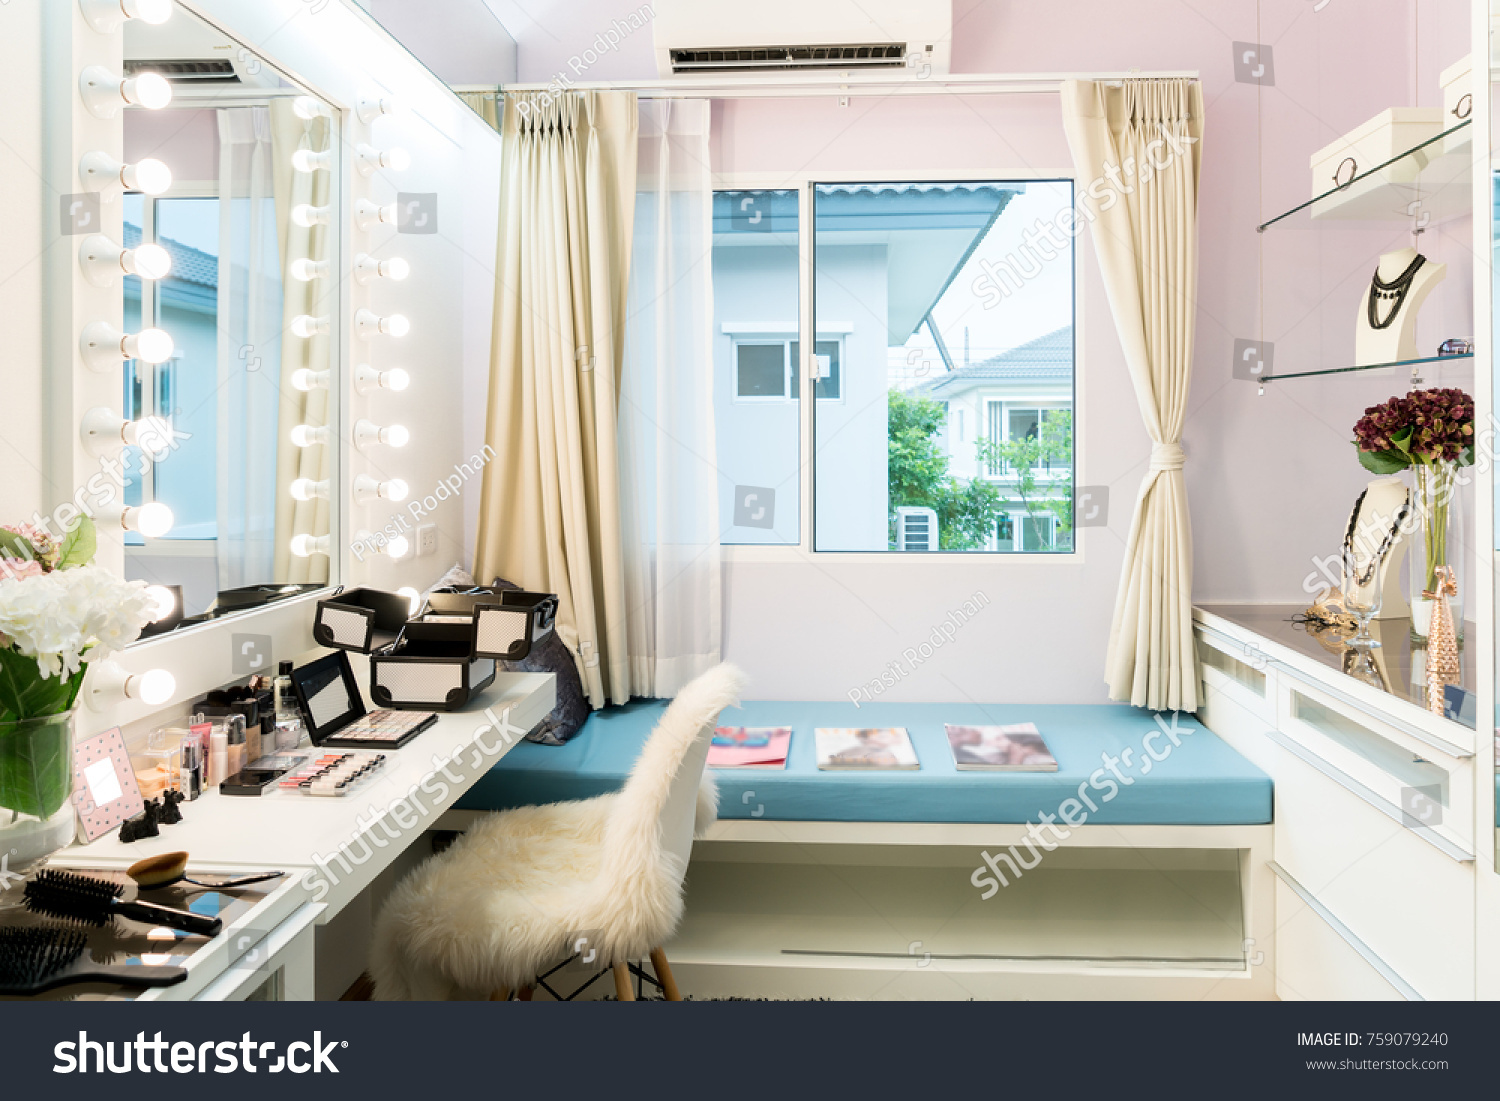 Modern Closet Room Makeup Vanity Table Stock Photo Edit Now 759079240